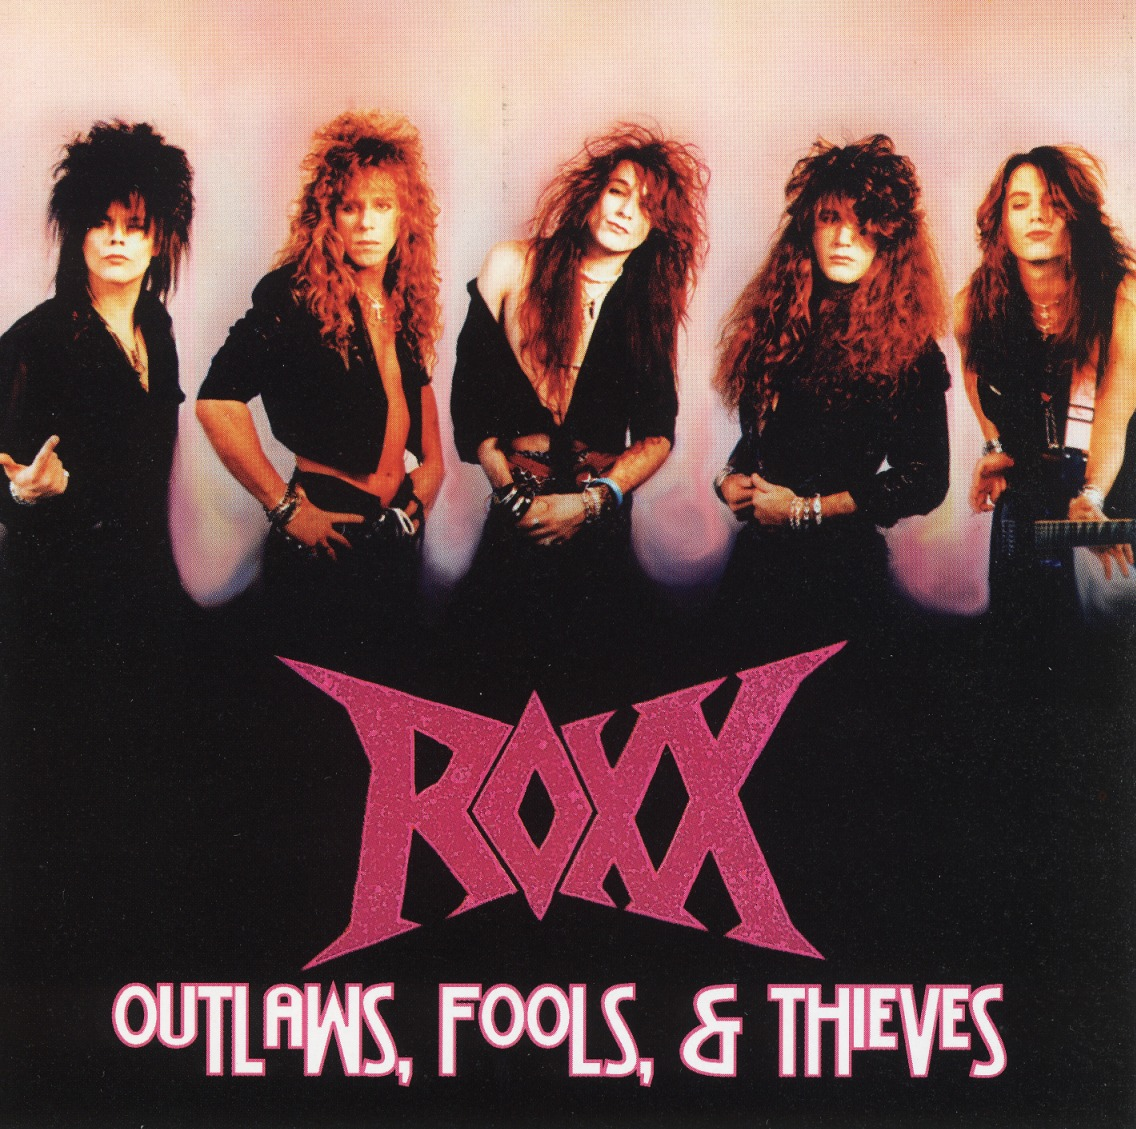 ROXX (US) / Outlaws, Fools, & Thieves